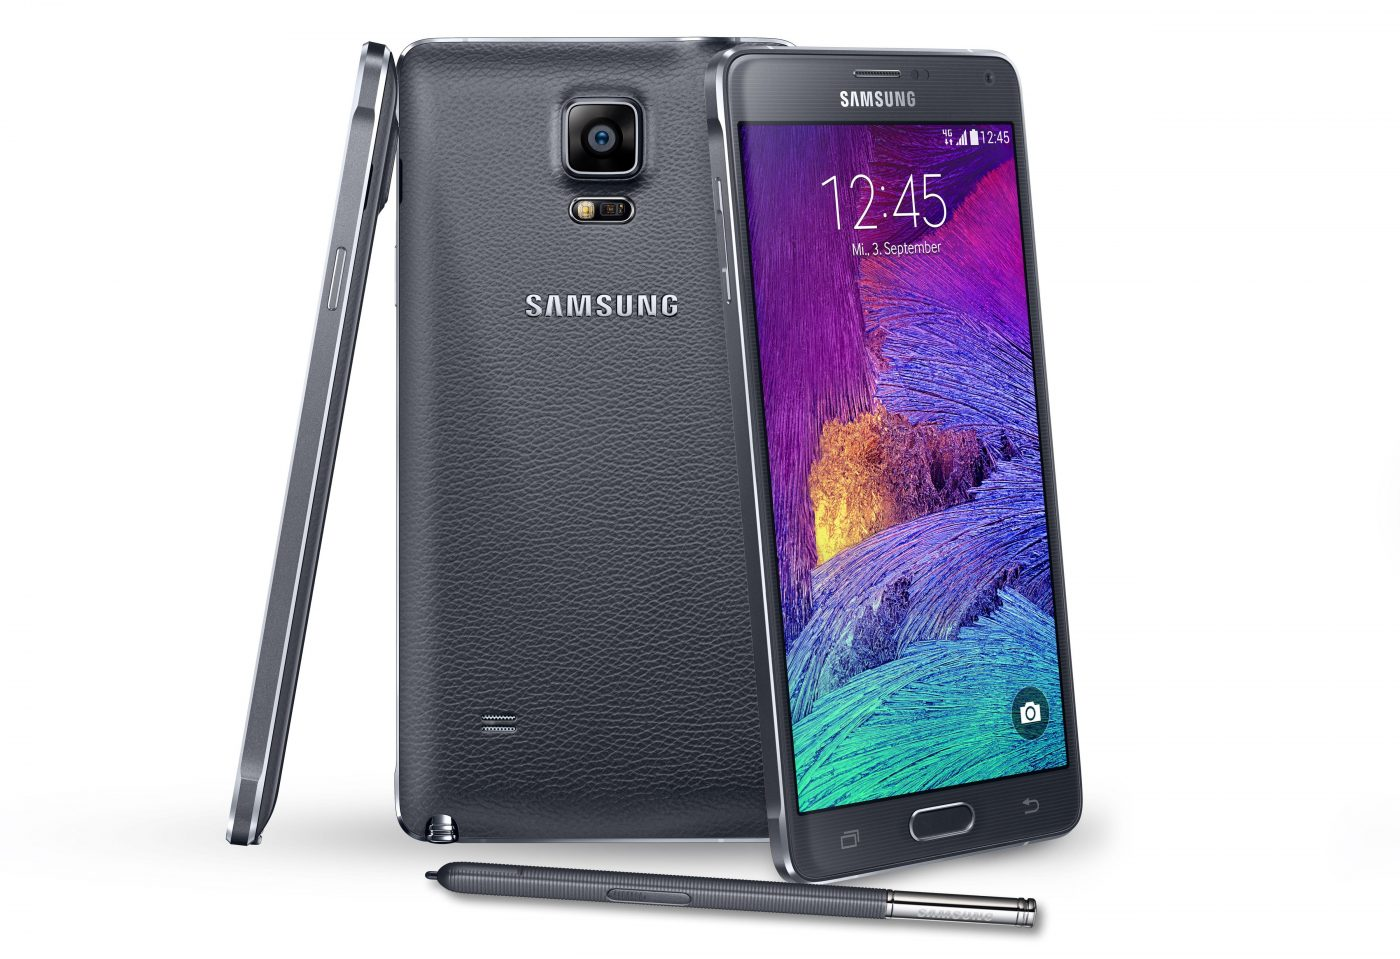 Samsung_GALAXY_Note_4_Charcoal-Black_08